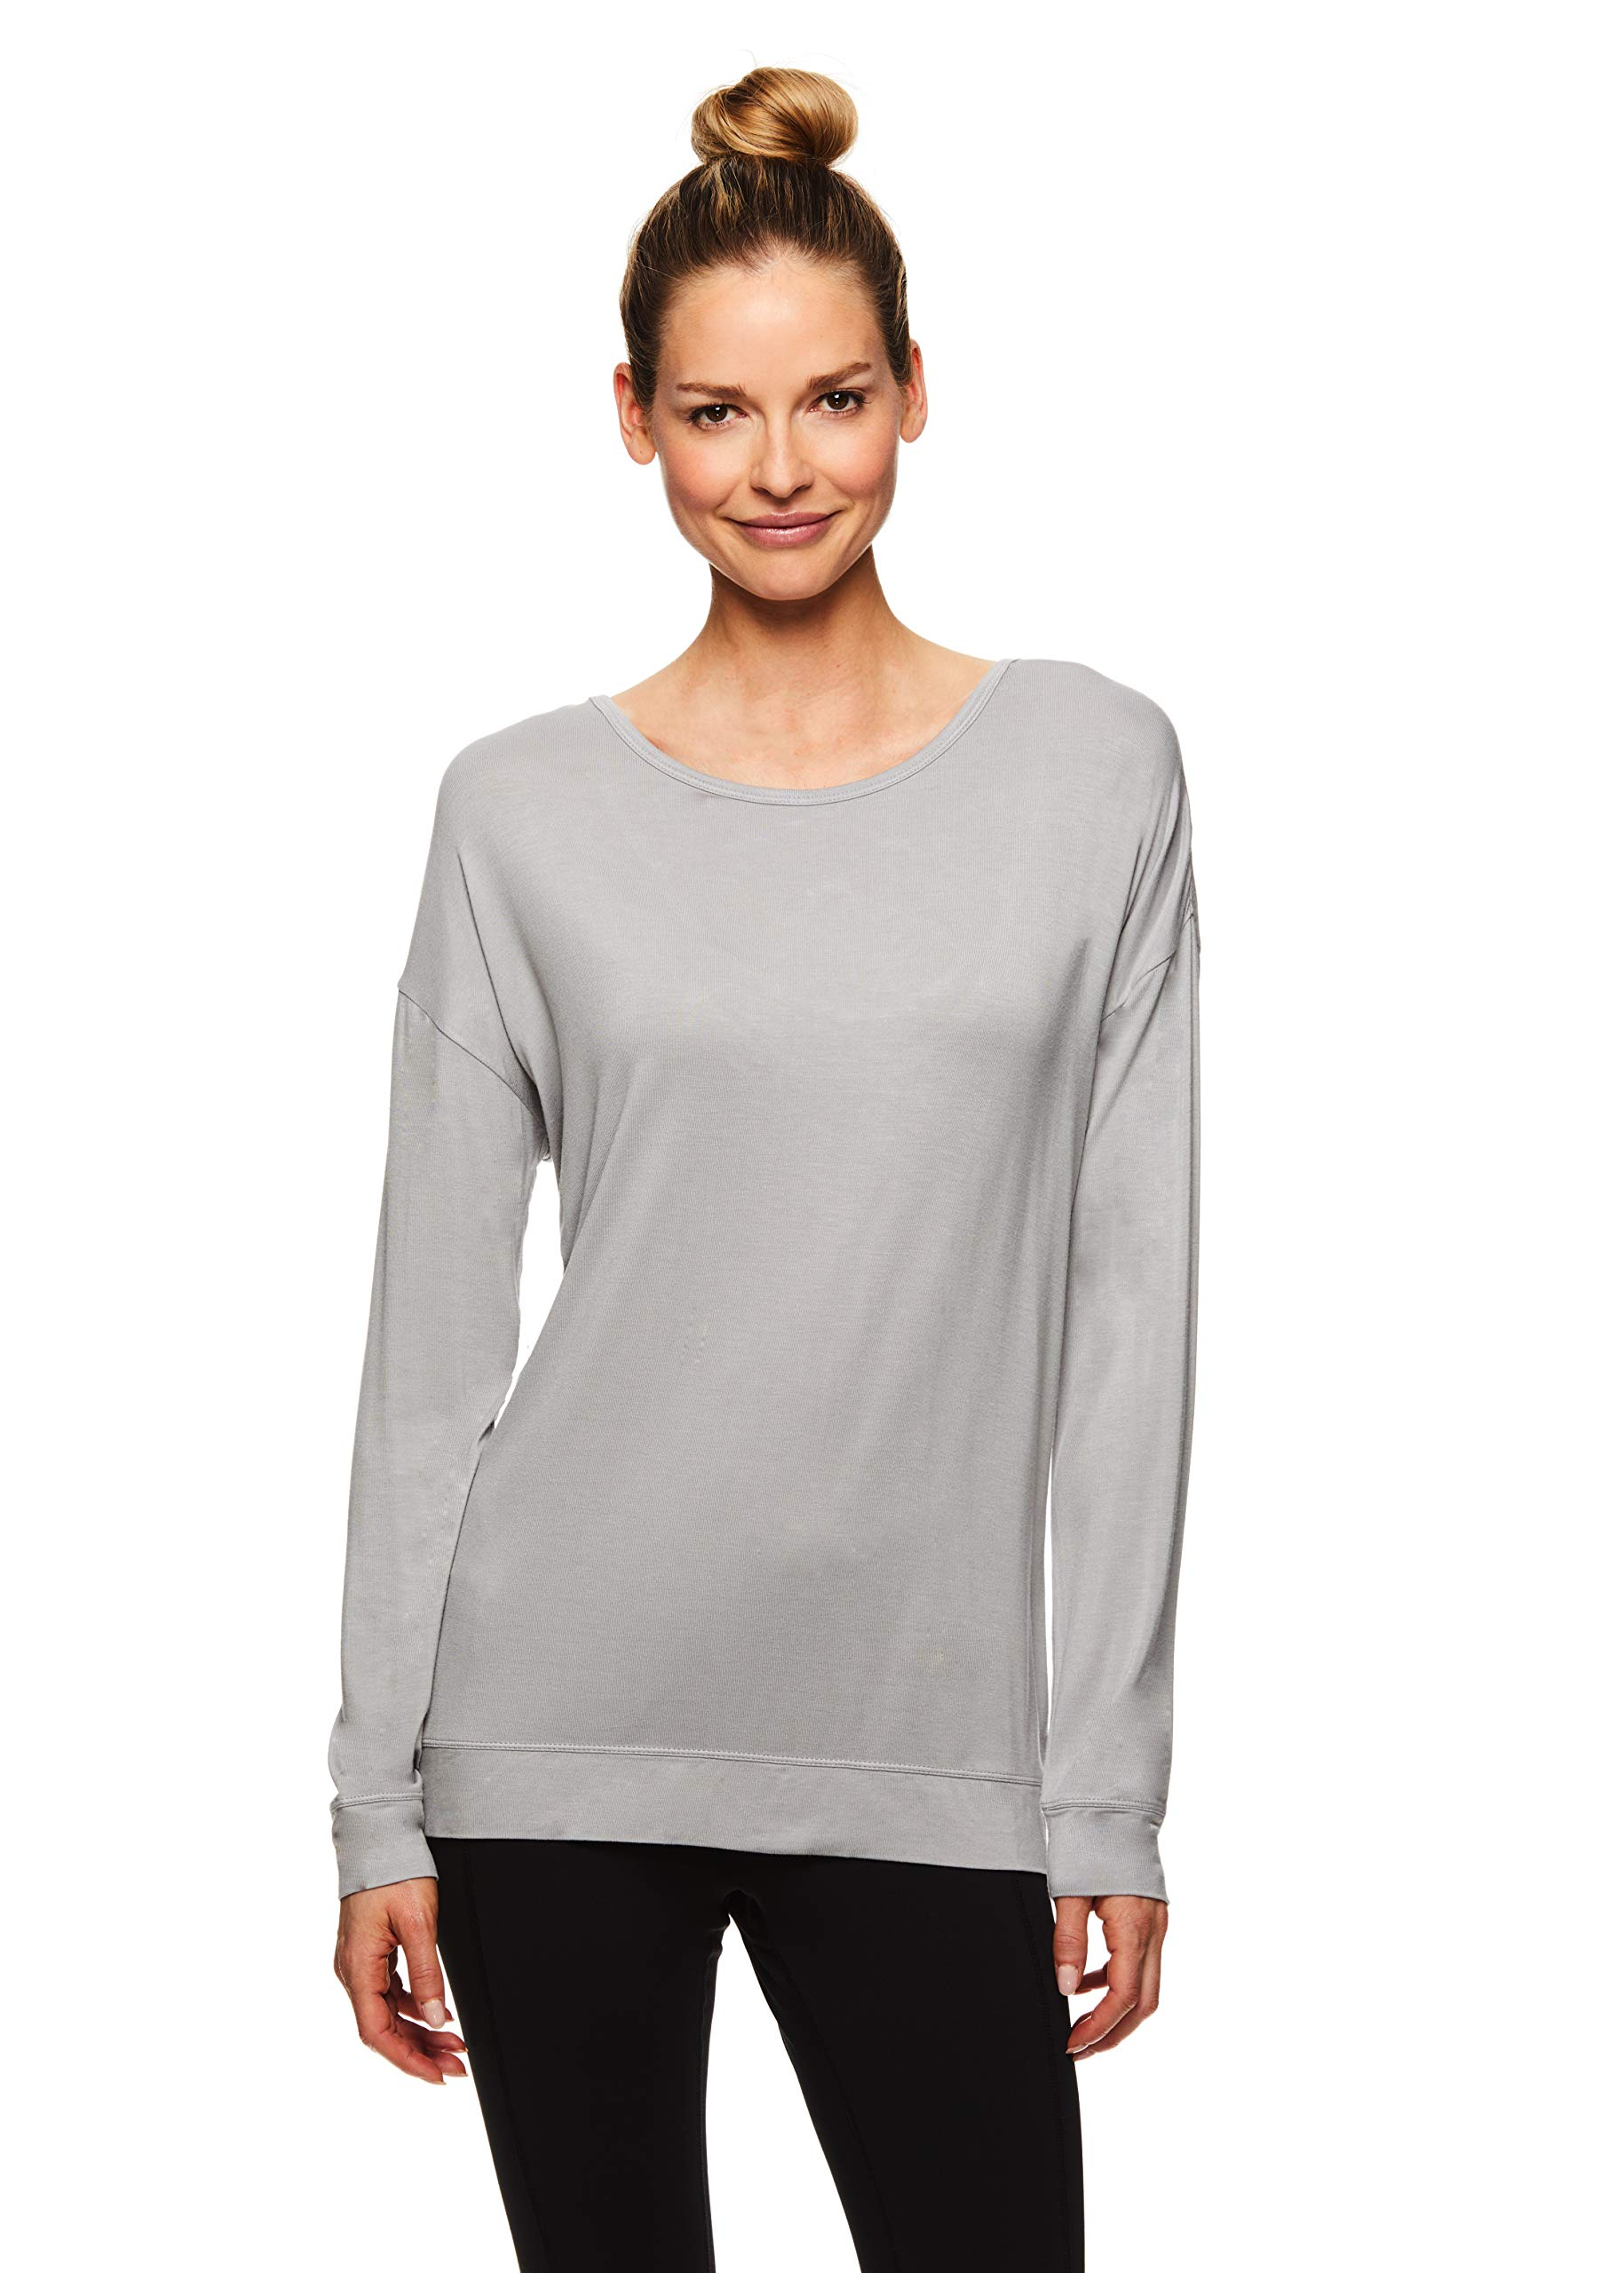 Gaiam Women's Long Sleeve Yoga & Workout T Shirt - Activewear Top w/Open Back Detail - Emma Dapple Grey, X-Small by Gaiam